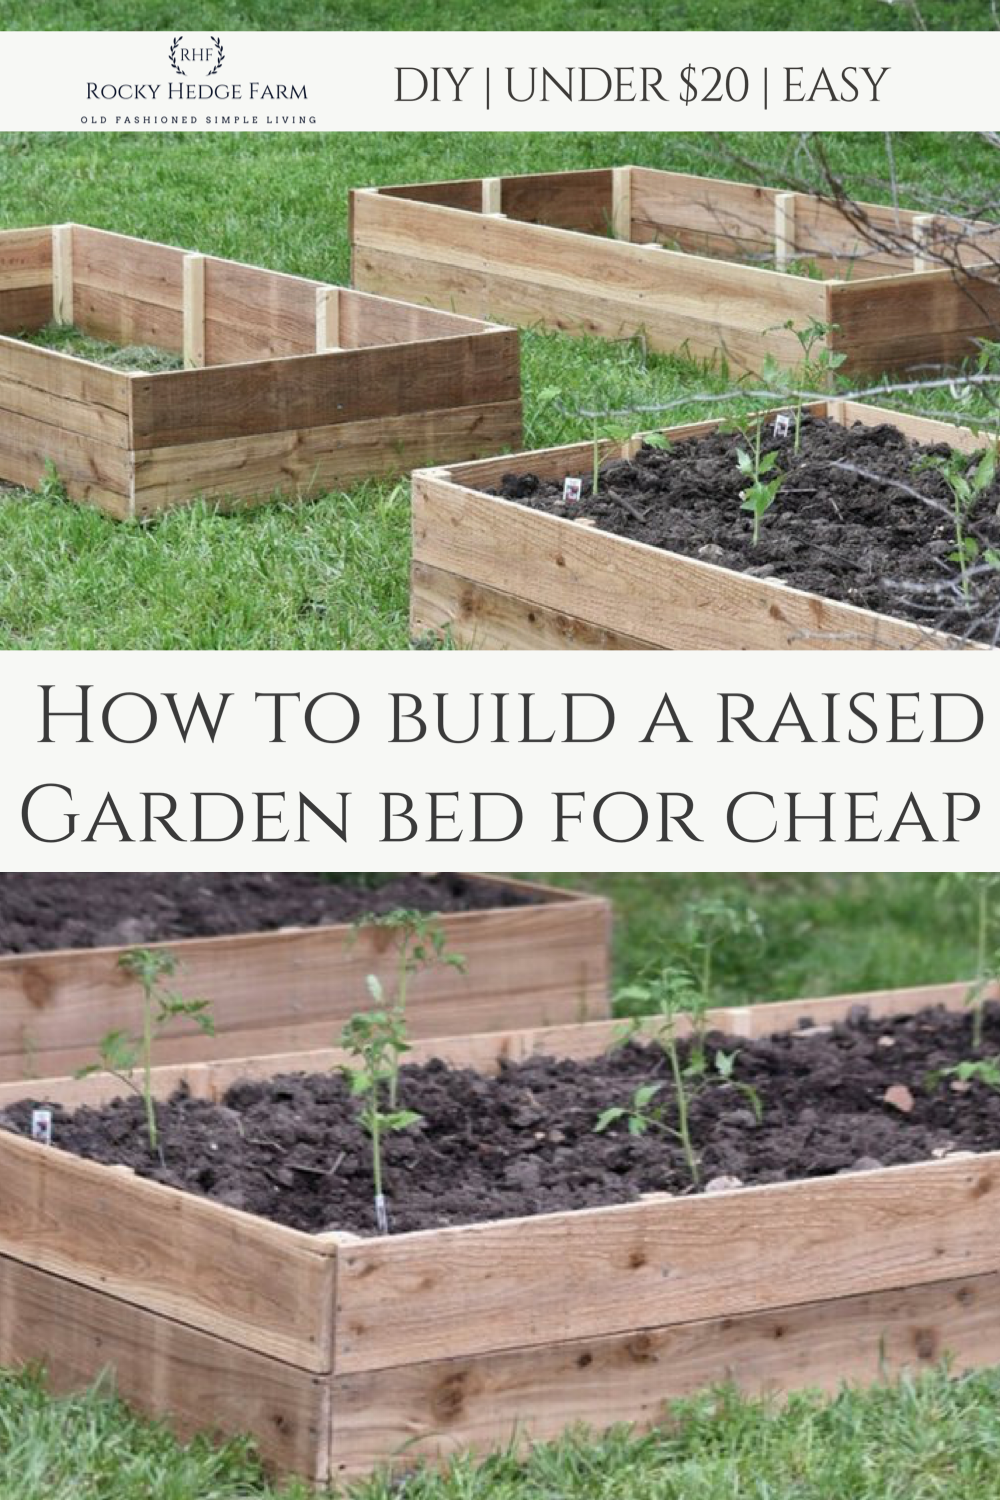 Learn how to build raised vegetable beds